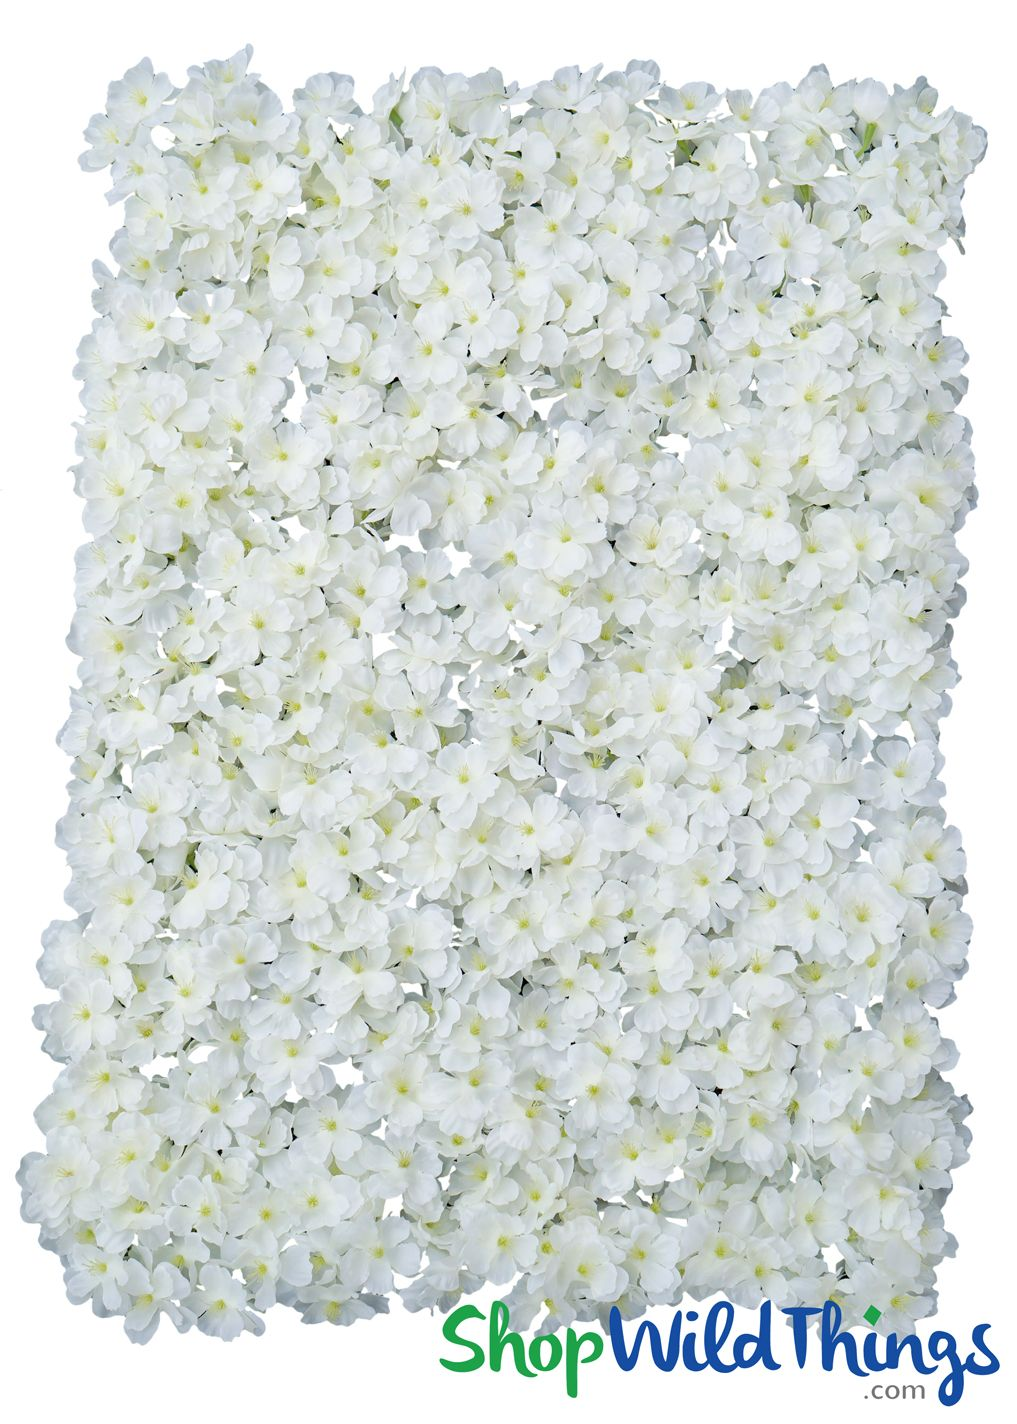 Today S Single Item Blowout Flower Wall 17 X 25 Silk Cherry Blossoms Cream White Flower Wall Wedding Flower Wall Flower Wall Backdrop